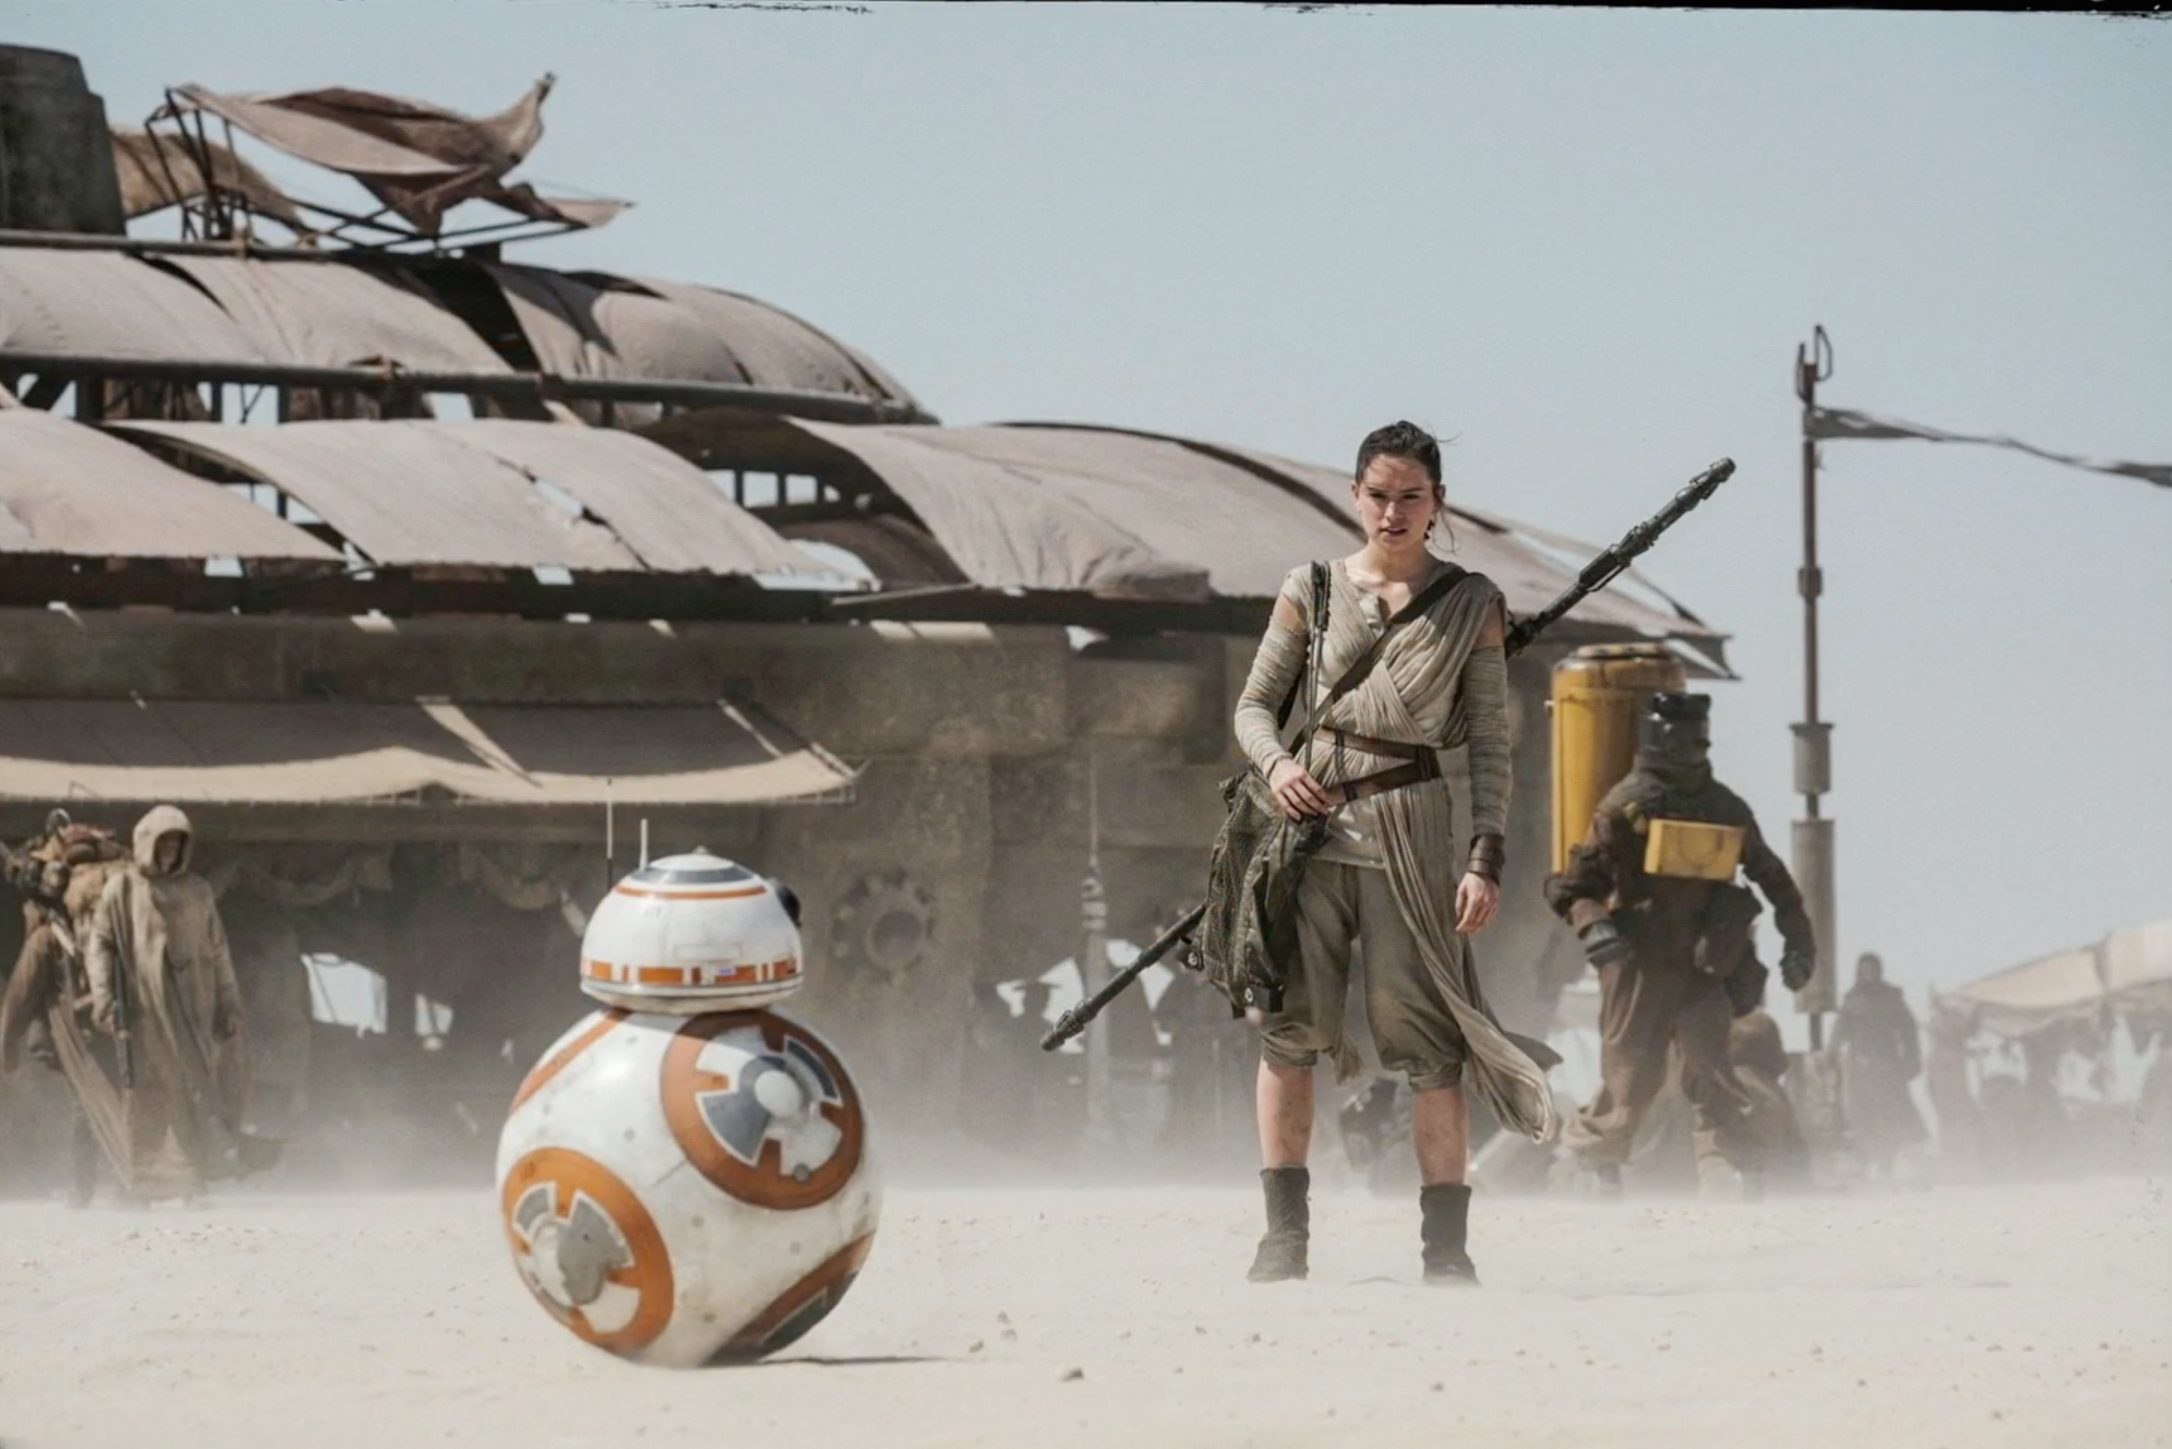 Review: Star Wars: The Force Awakens Will Please Everyone, But That's About It